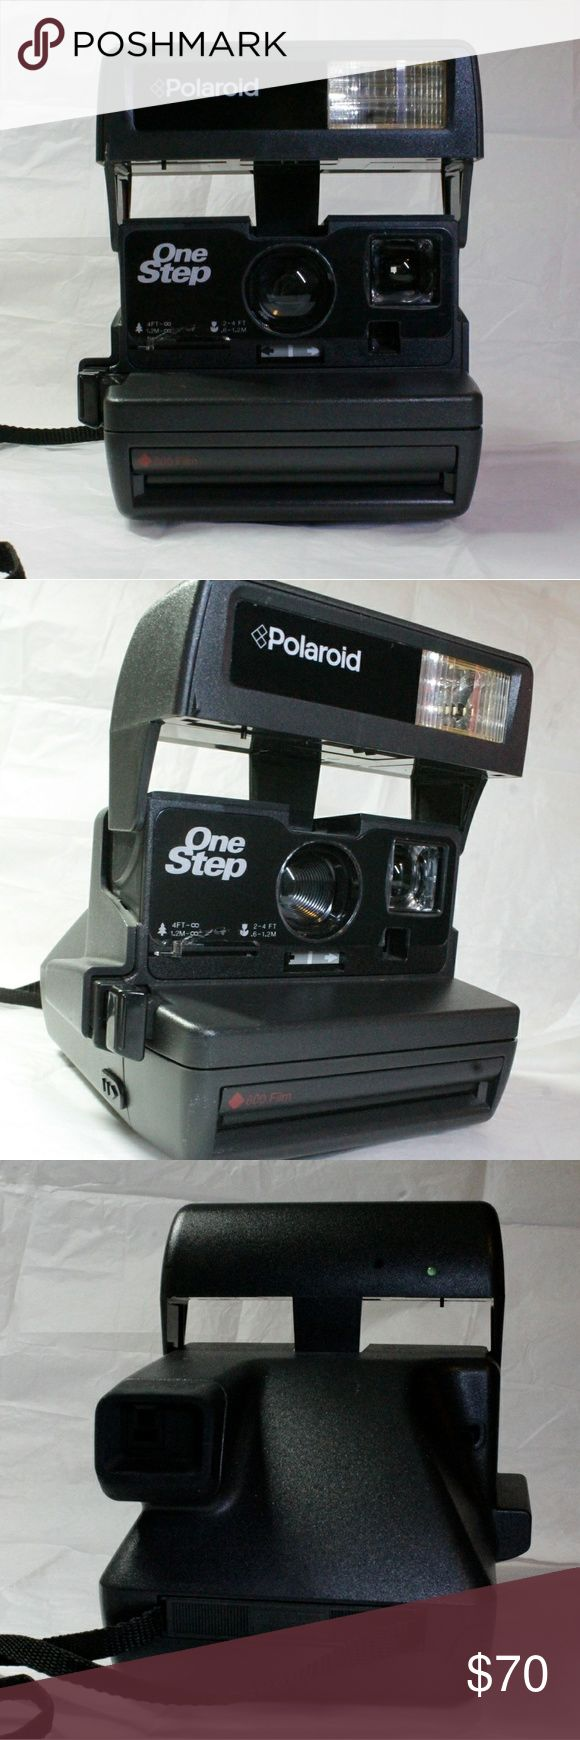 Polaroid One Step 600 instant camera A Polaroid camera that's in great condition like new only has been used once. Works well and takes some great photos. Still has some of the plastic on it. Uses Polaroid 600 film polaroid Other